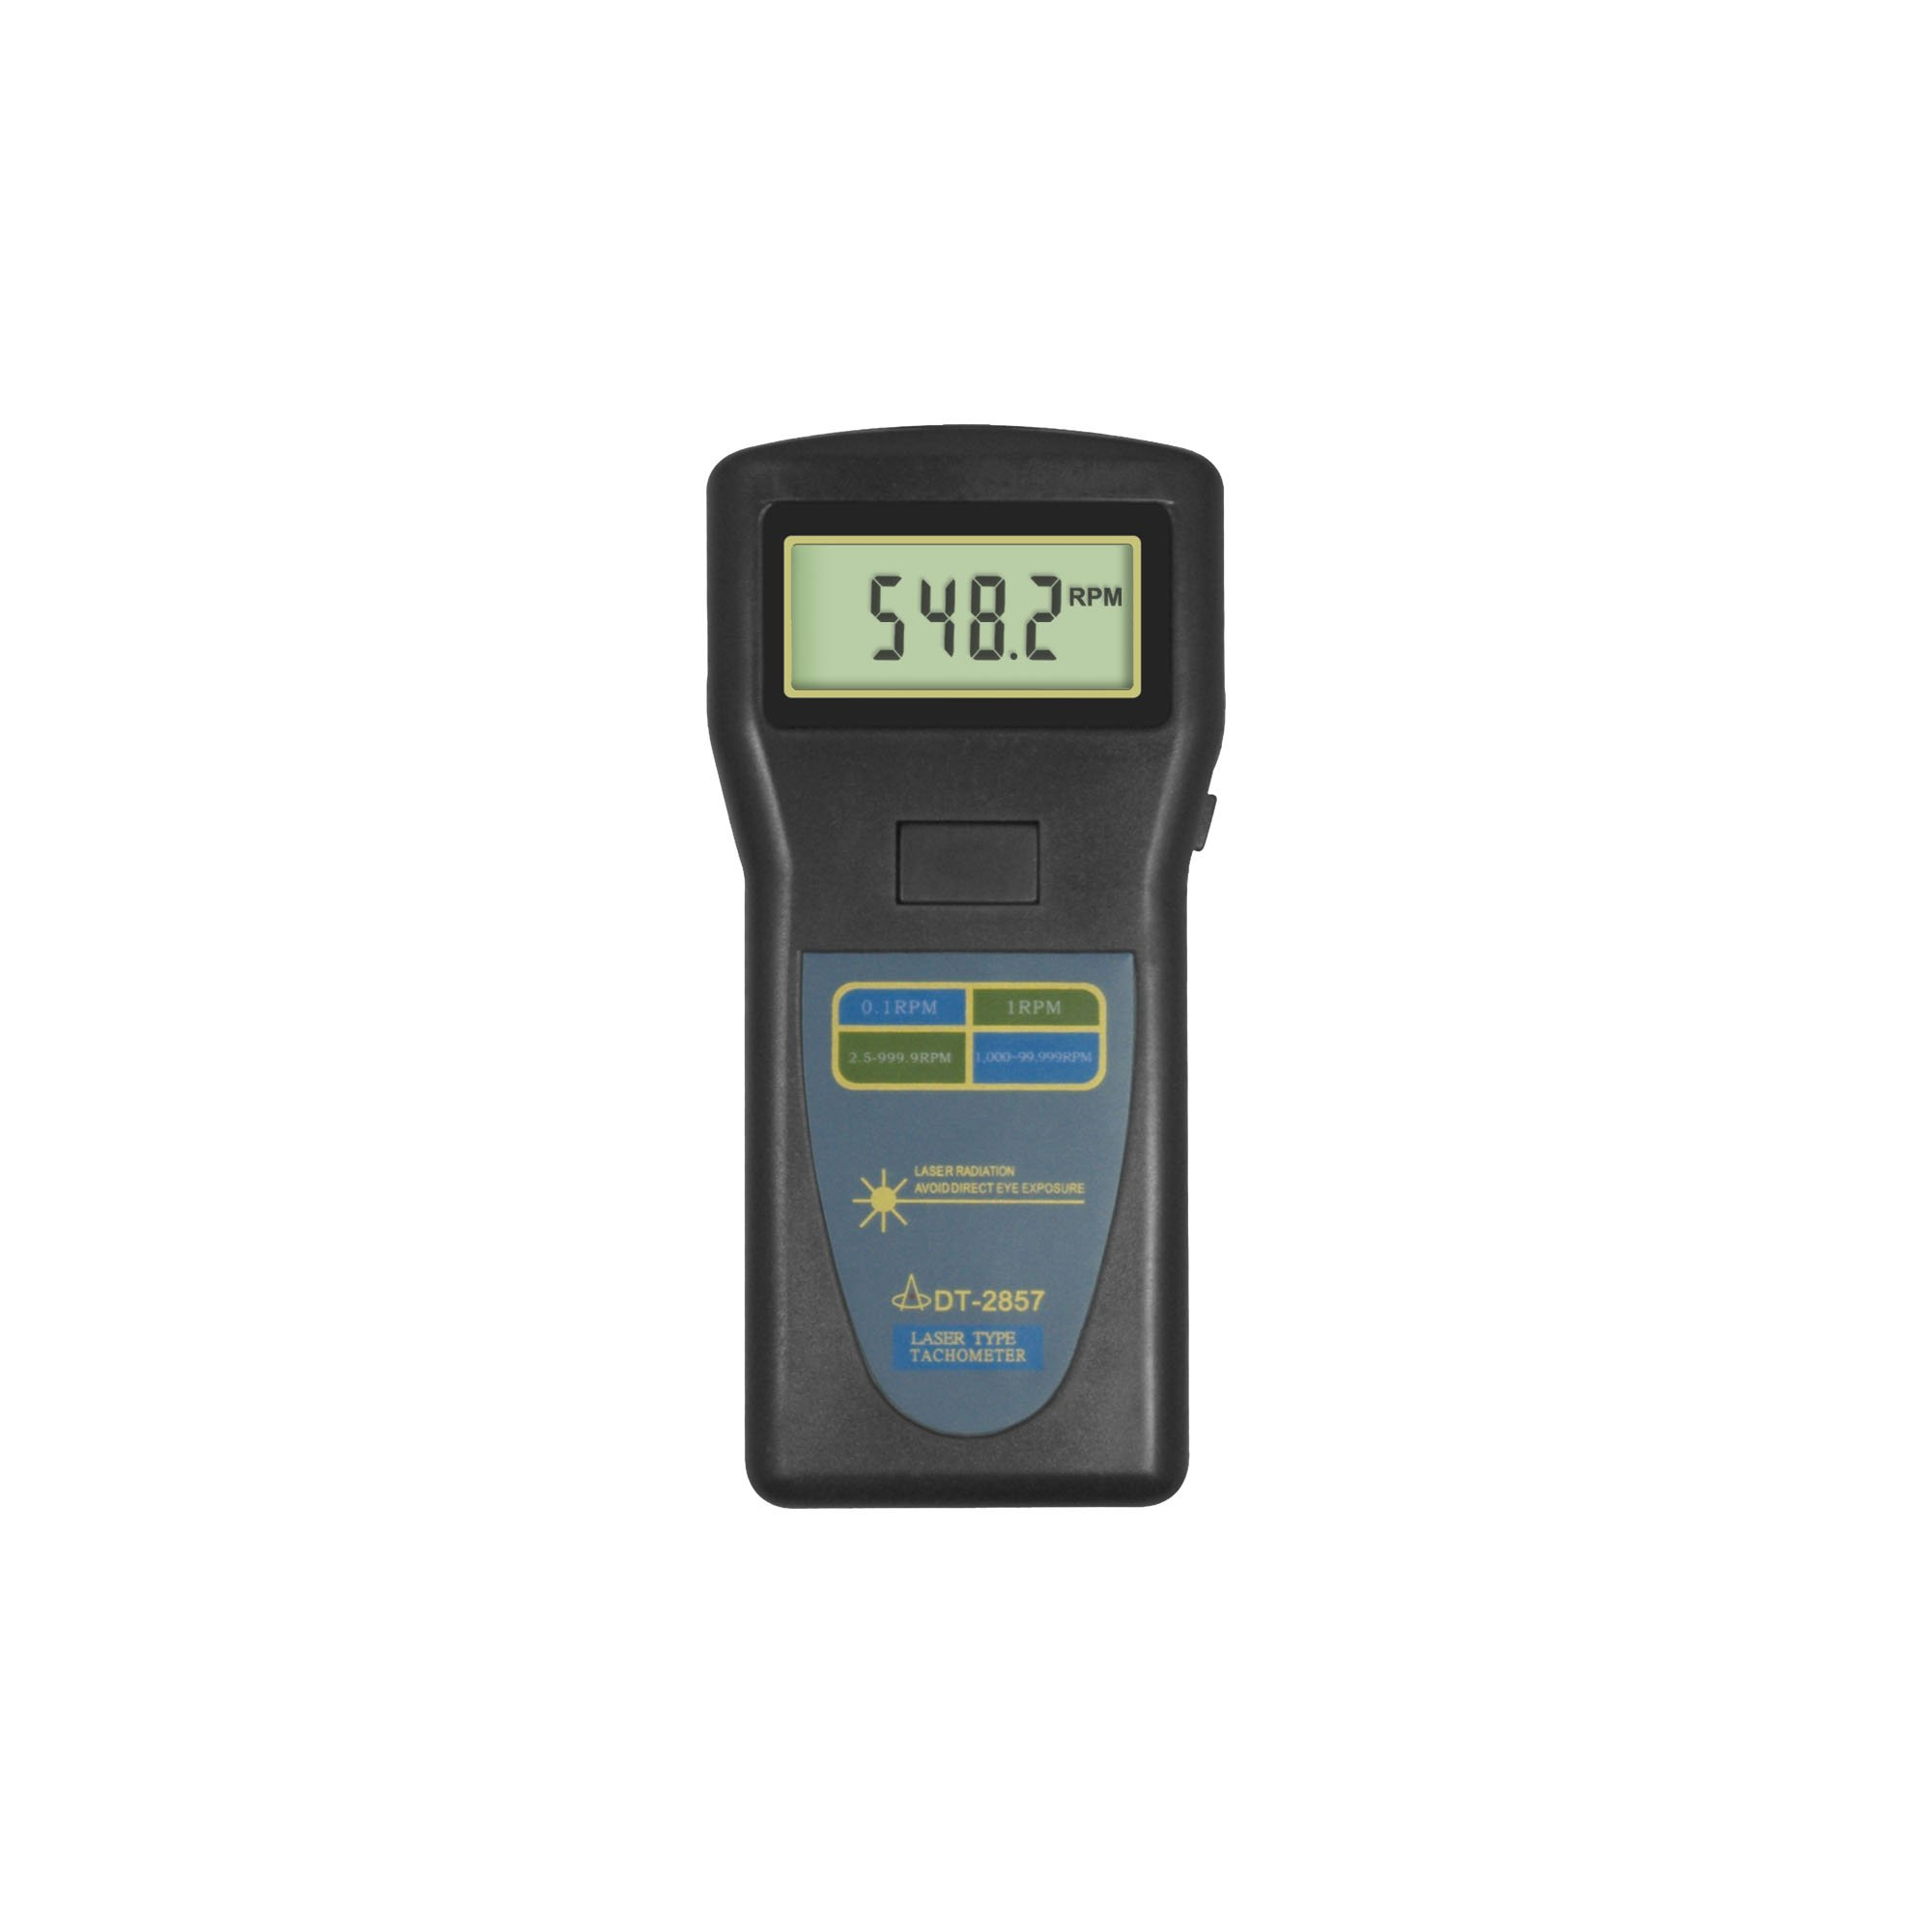 Landtek Photo Tachometer DT-2857 Velocity Speed Frequency Tester 2.5~99,999 r/min (0.05% n+1d) for Motor Fan Washing-machine Automobile Airplane Steamer